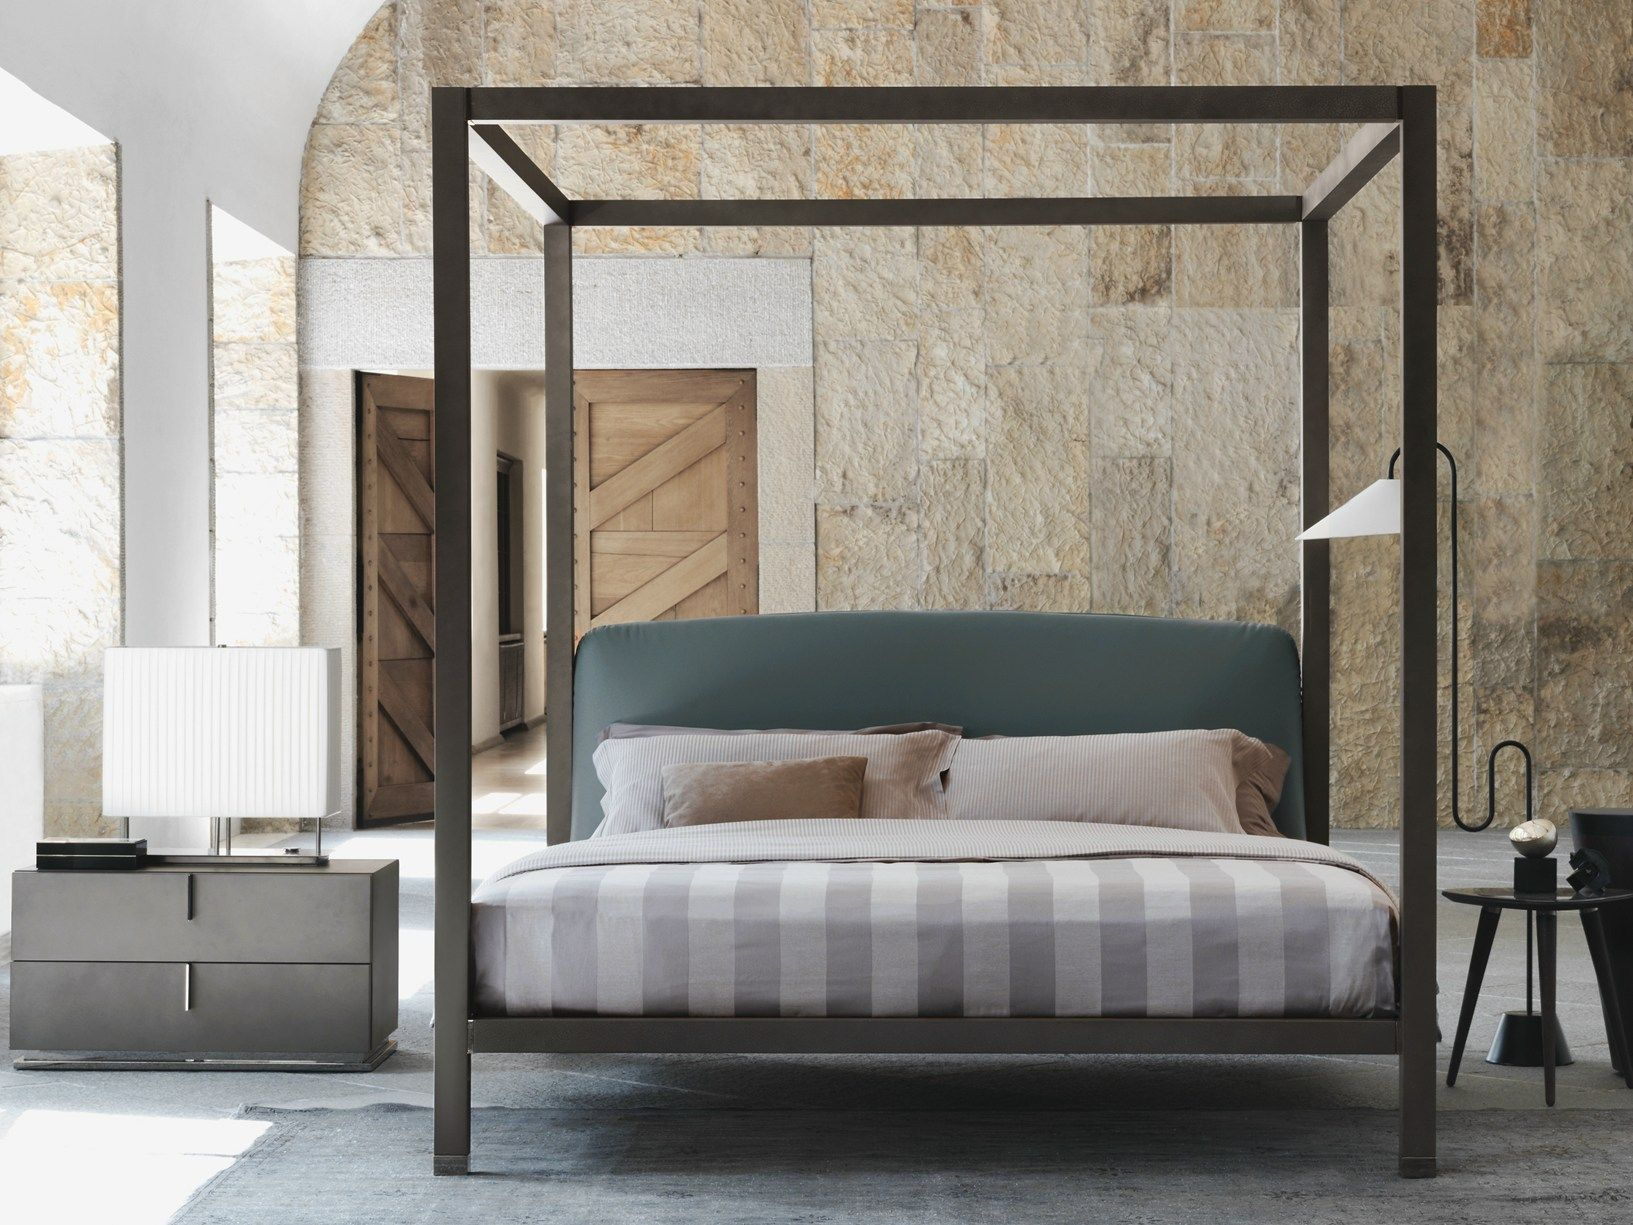 Letto A Baldacchino Design.Ari Flou S New Canopy Bed